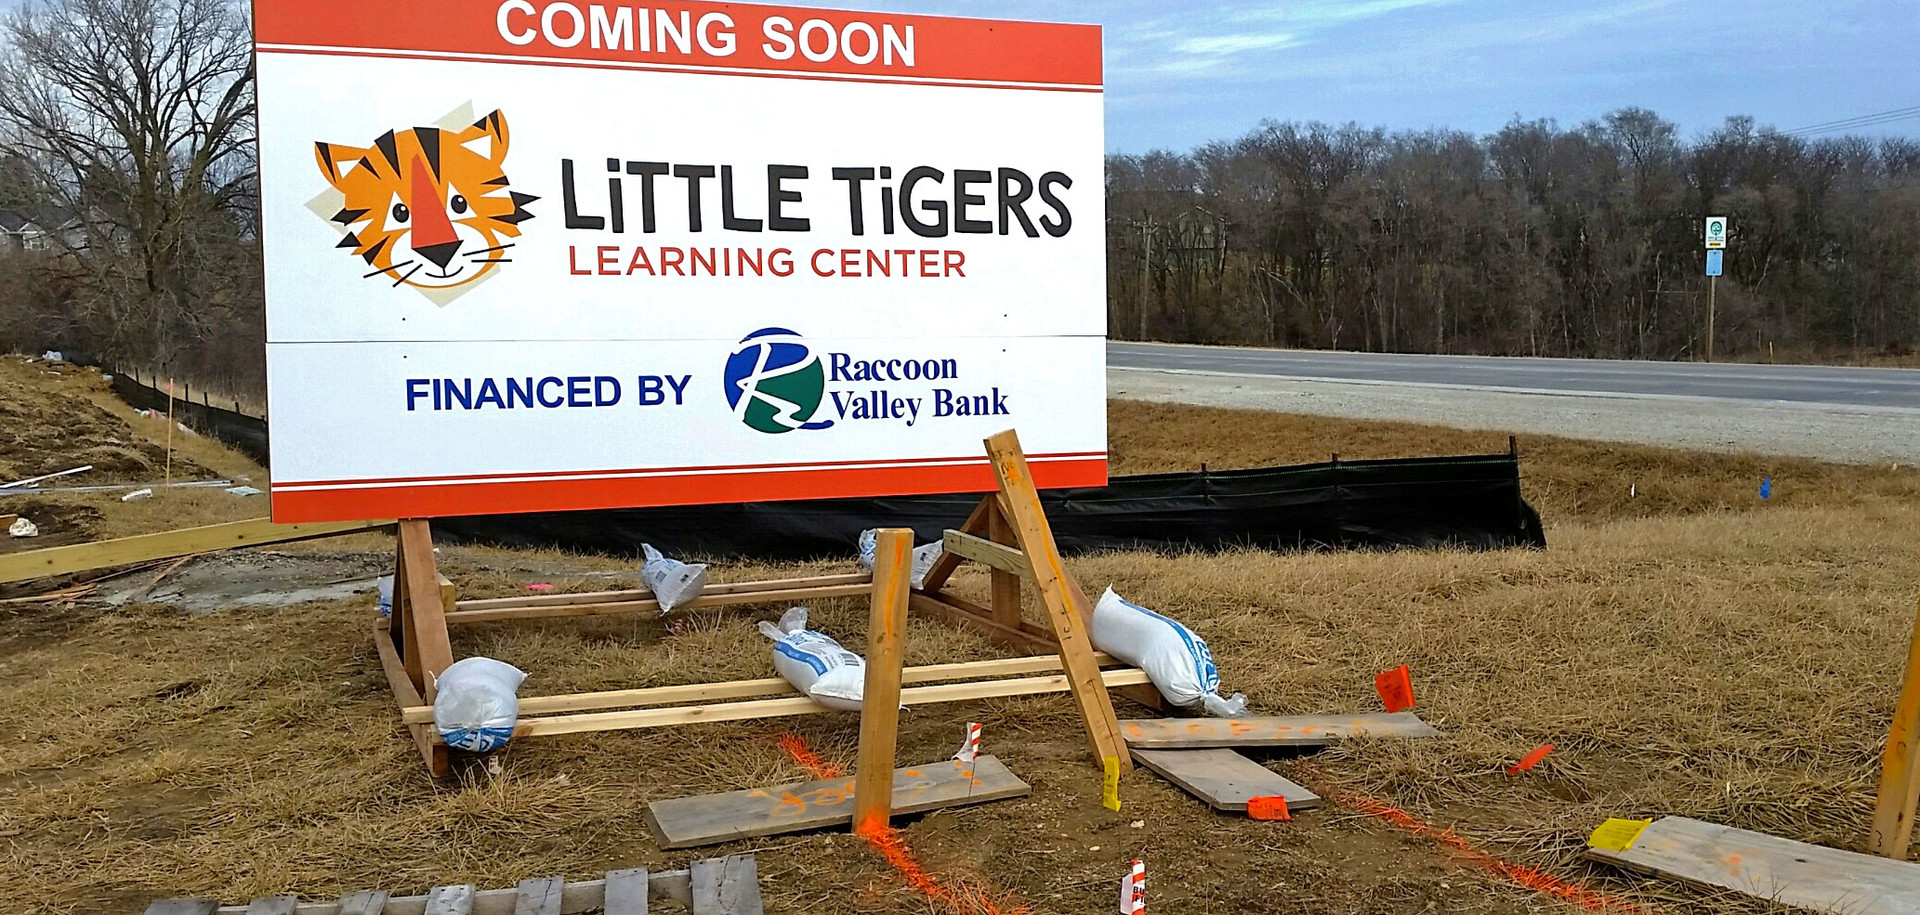 Little Tigers Site Sign on Skids